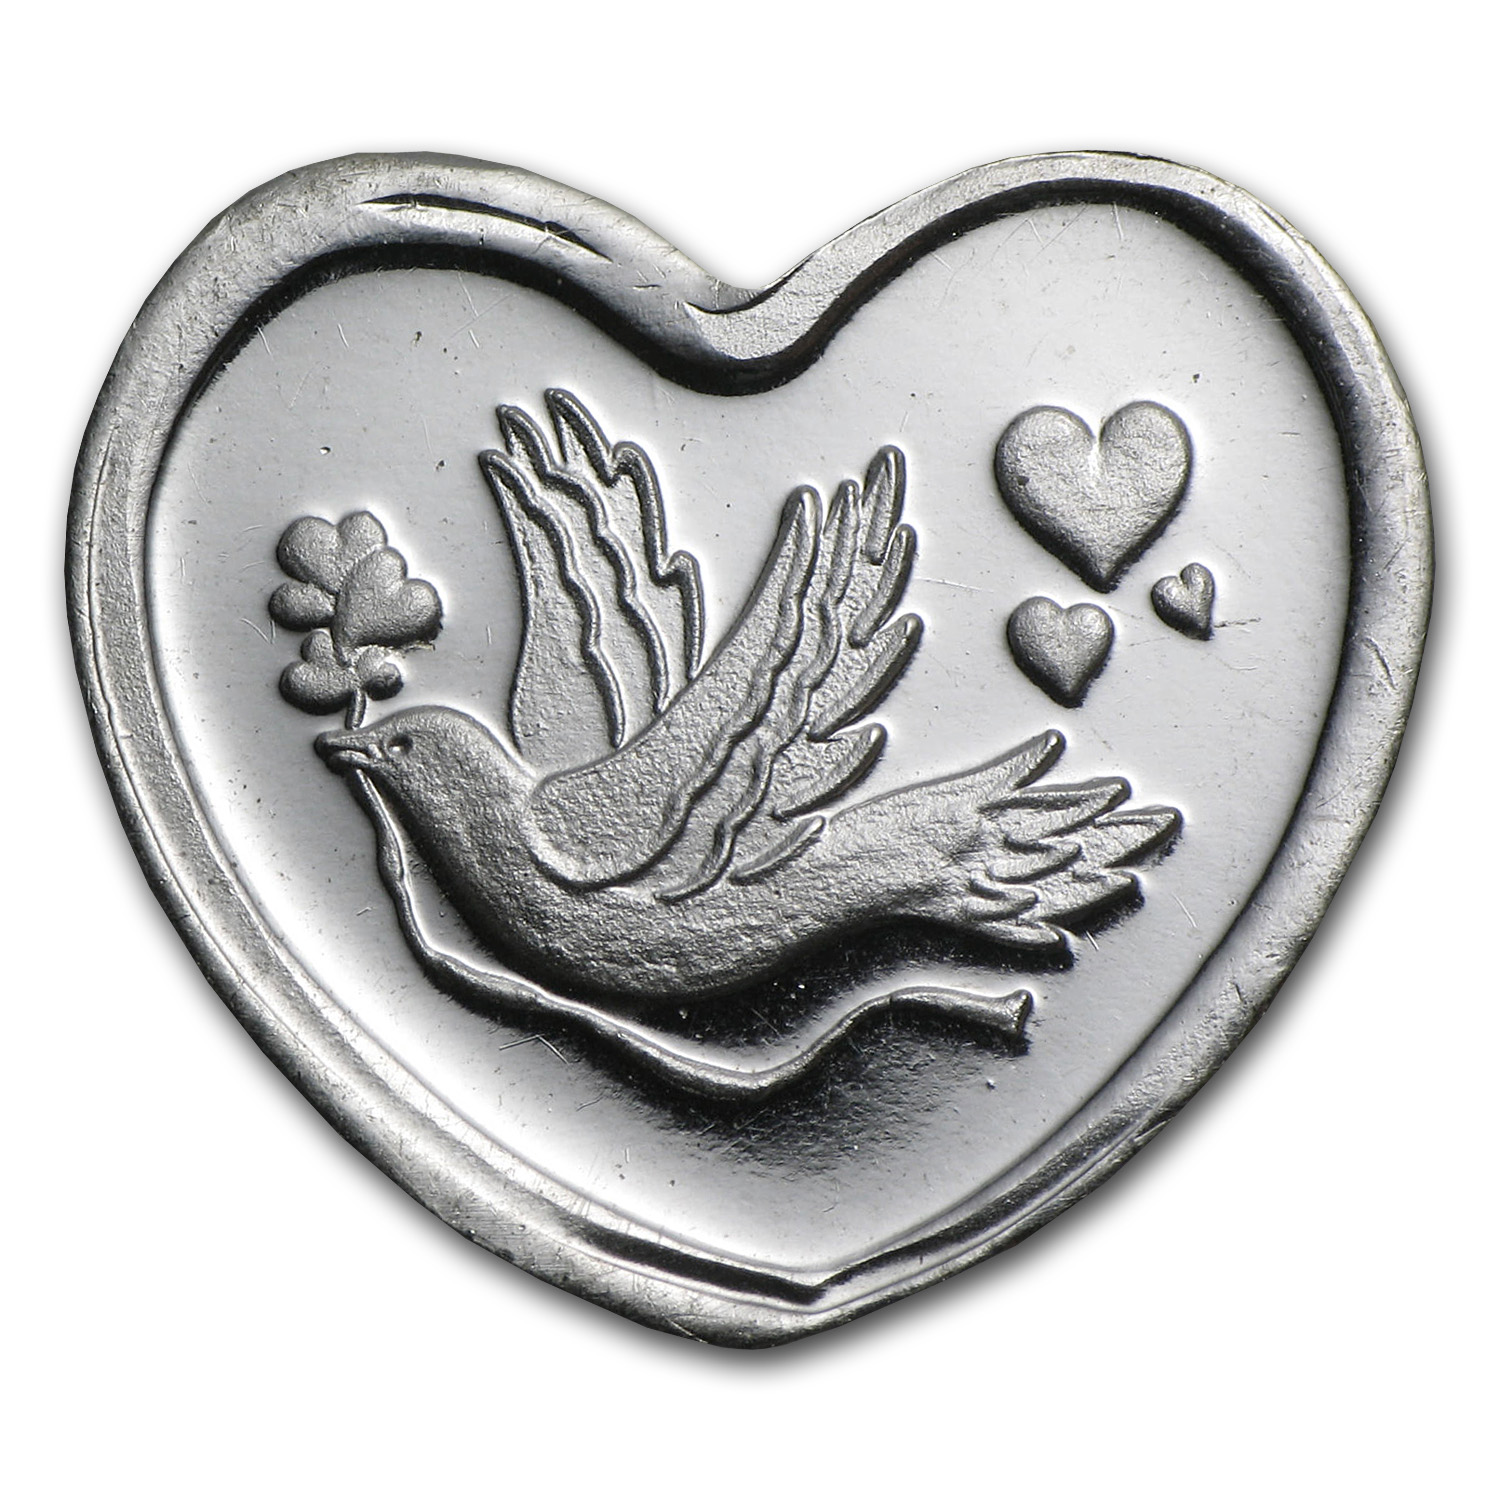 1/10 oz Silver Hearts - Dove and Hearts